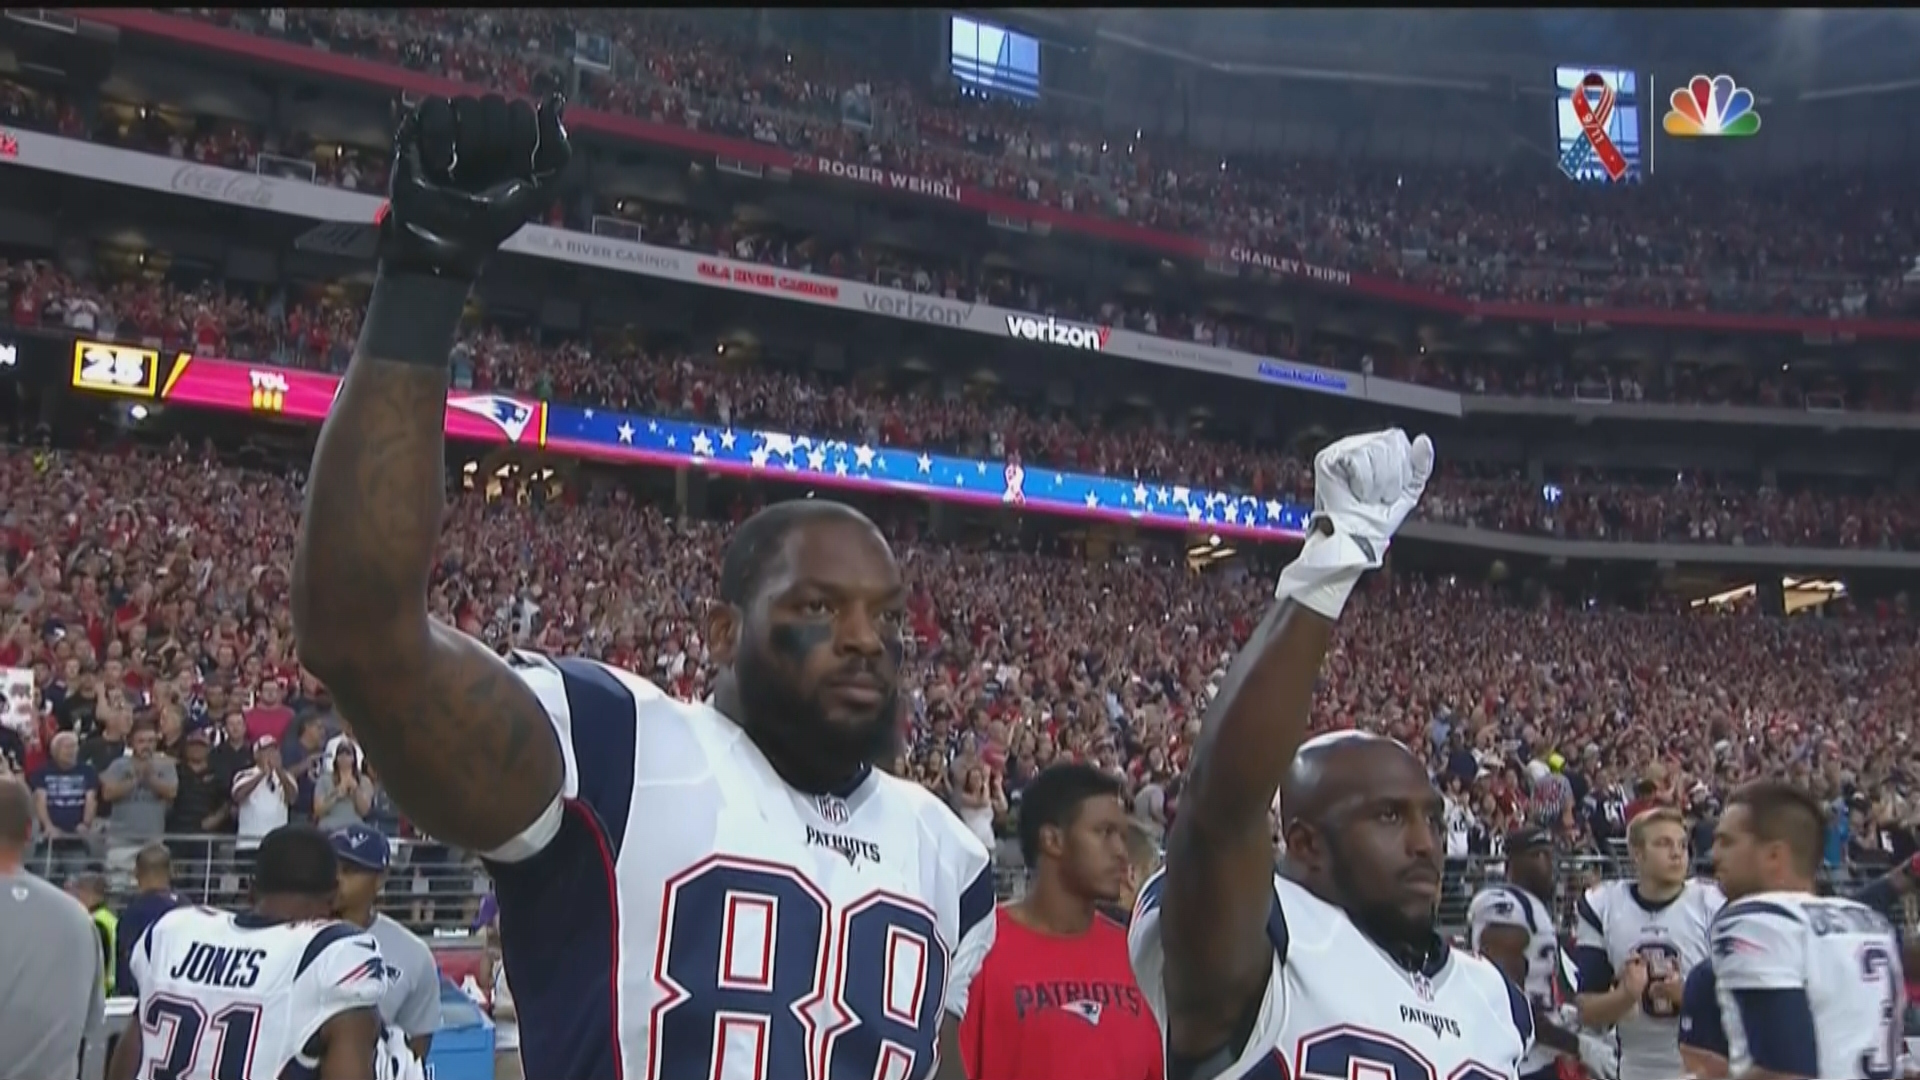 7a9f5bf6218 ... Patriots TE Martellus Bennett and DB Devin McCourty raise fists after  the national anthem